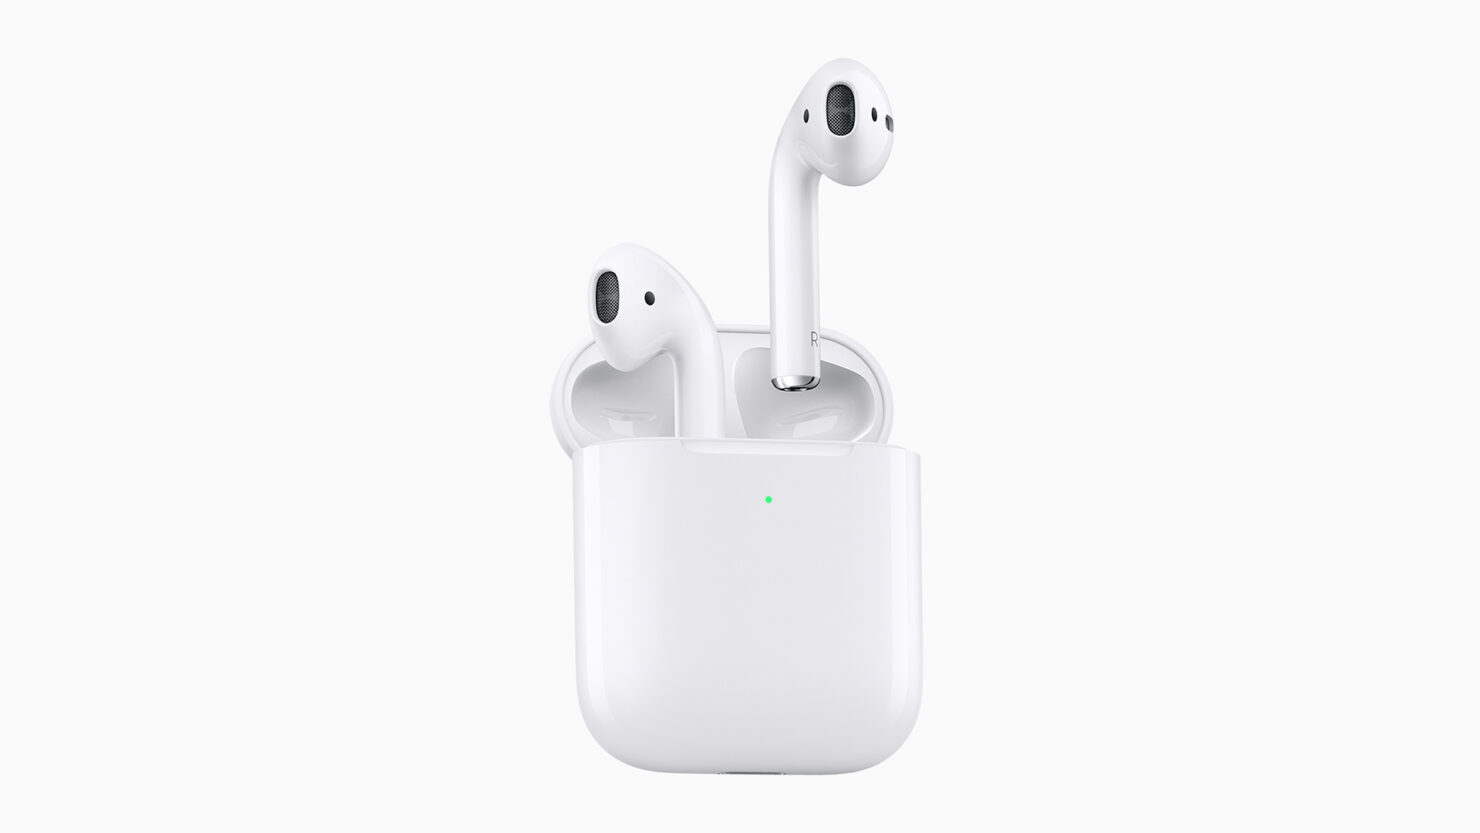 New AirPods shipping time extended after launch